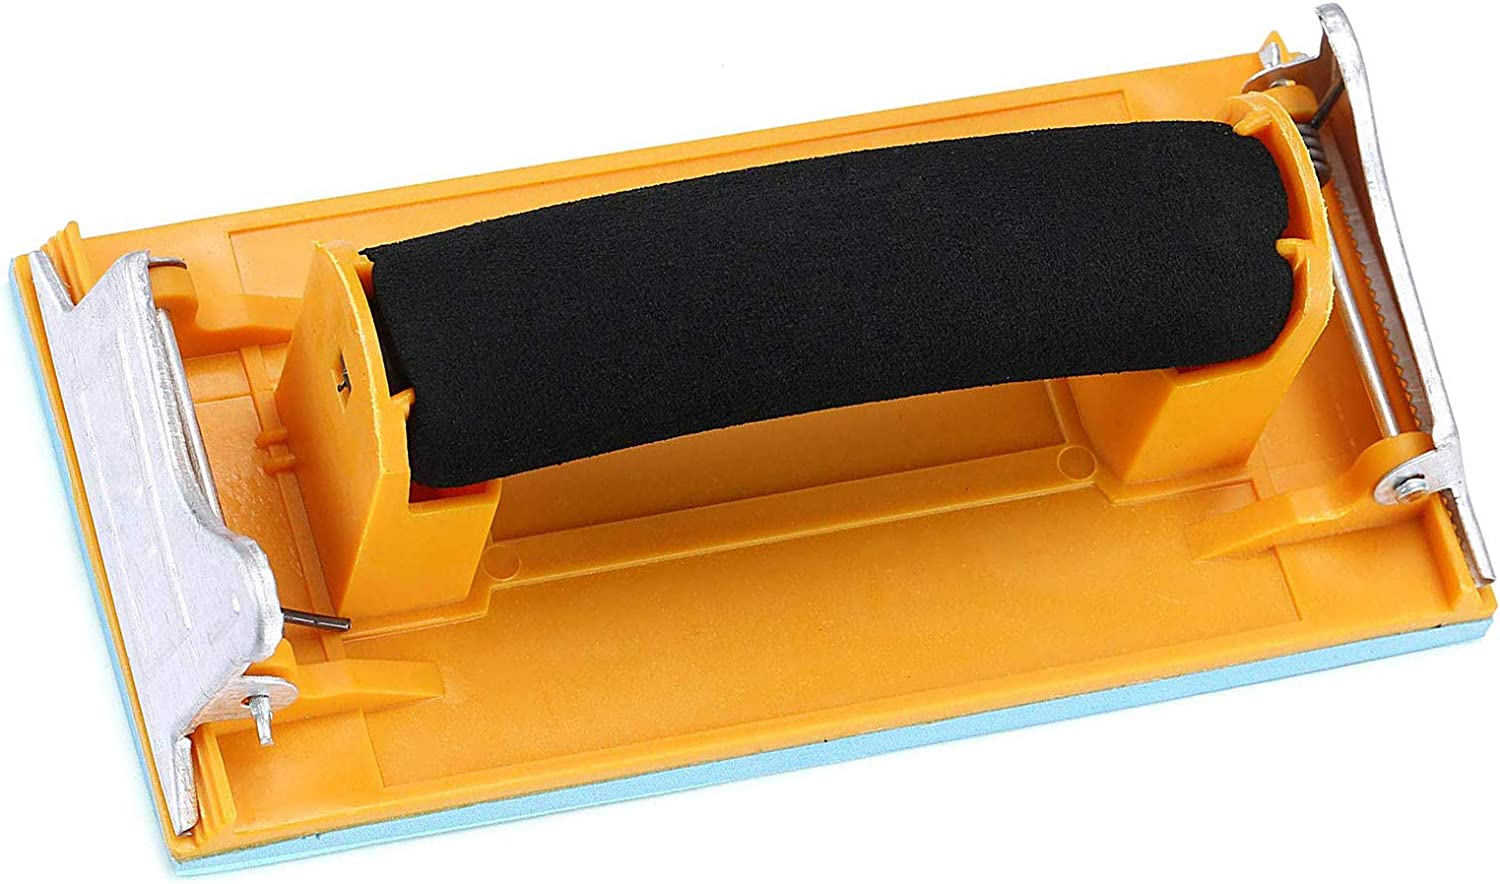 Perfect for 9 x 3.6 inch Sandpaper Hand Sander for Sand Paper Sanding Block with Sponge Handle